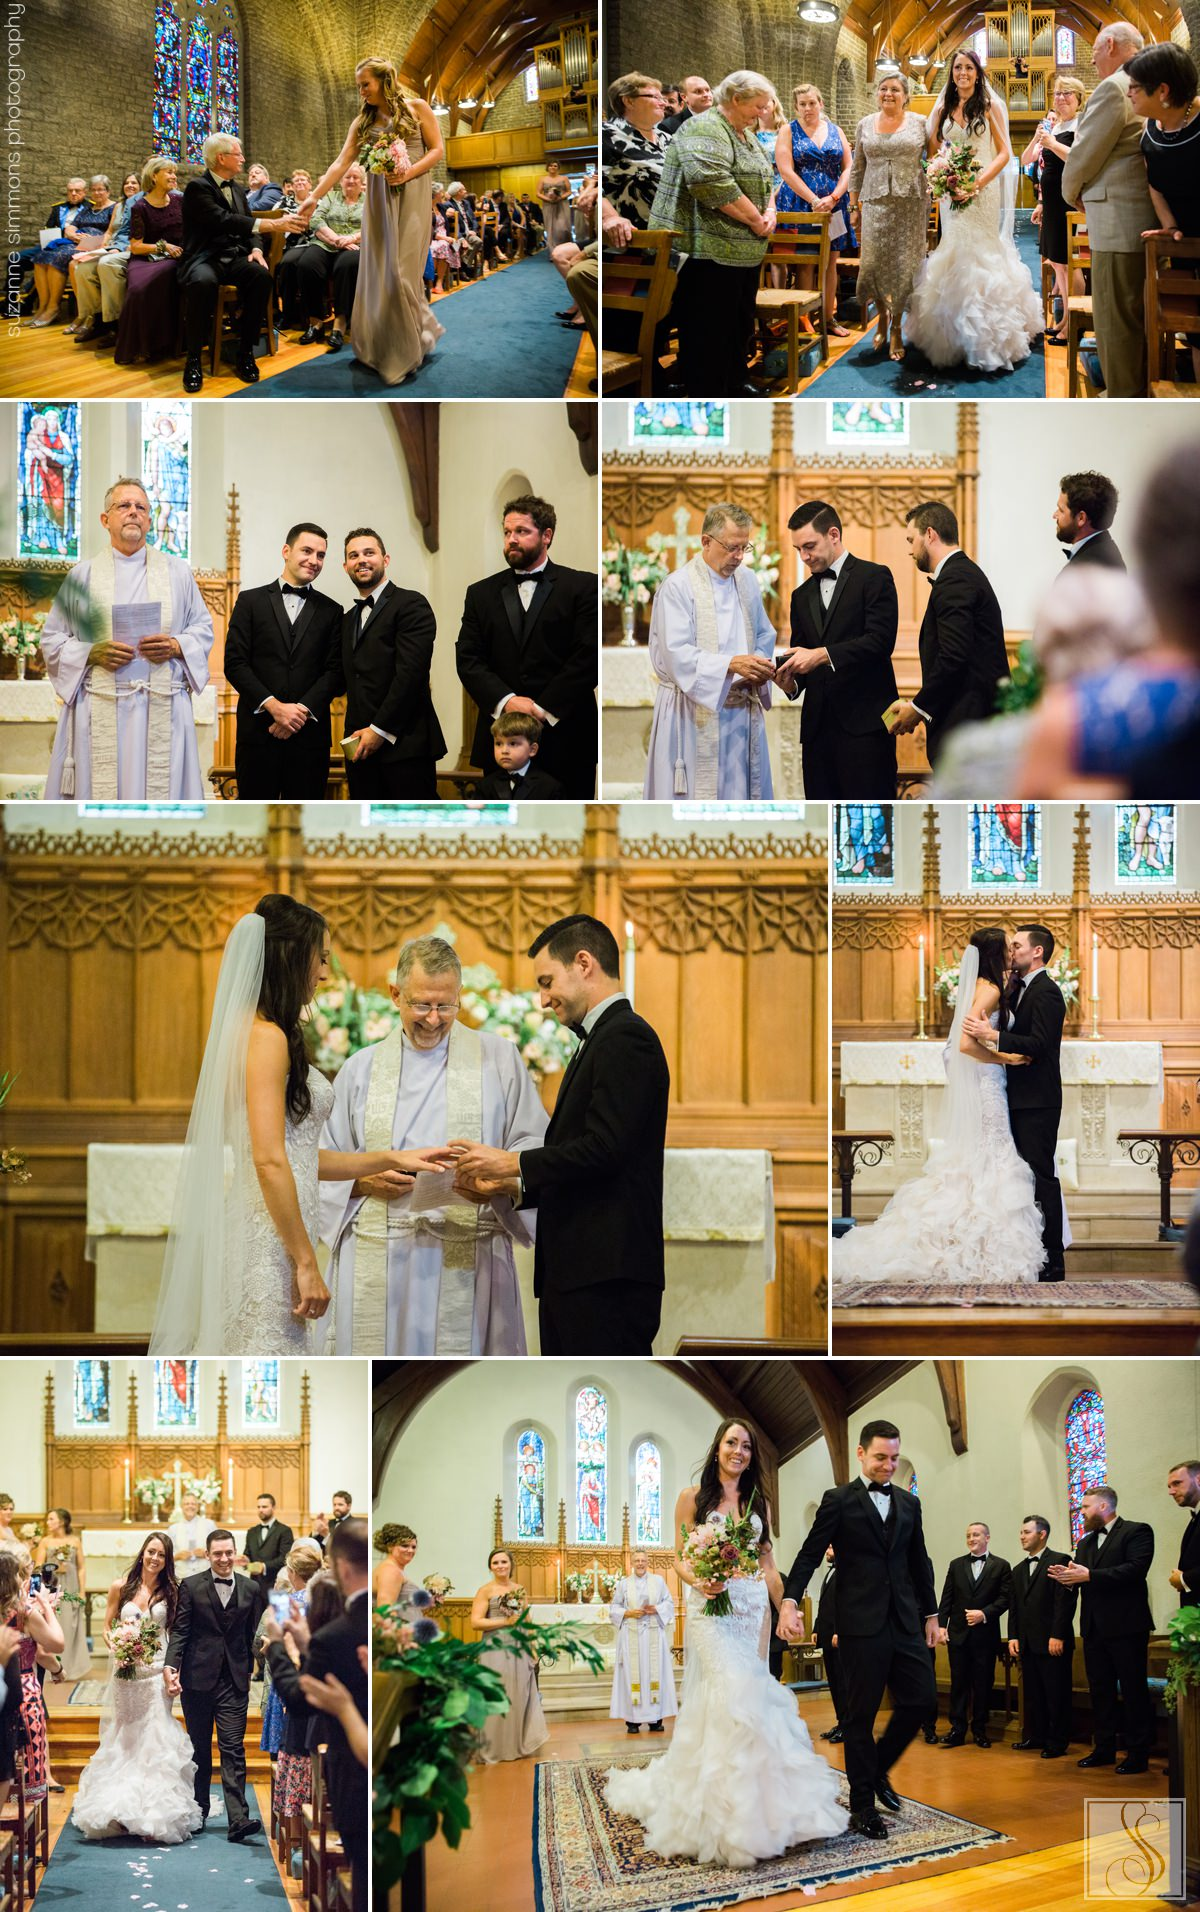 Summer Wedding at St. Mary's Church in Falmouth, Maine